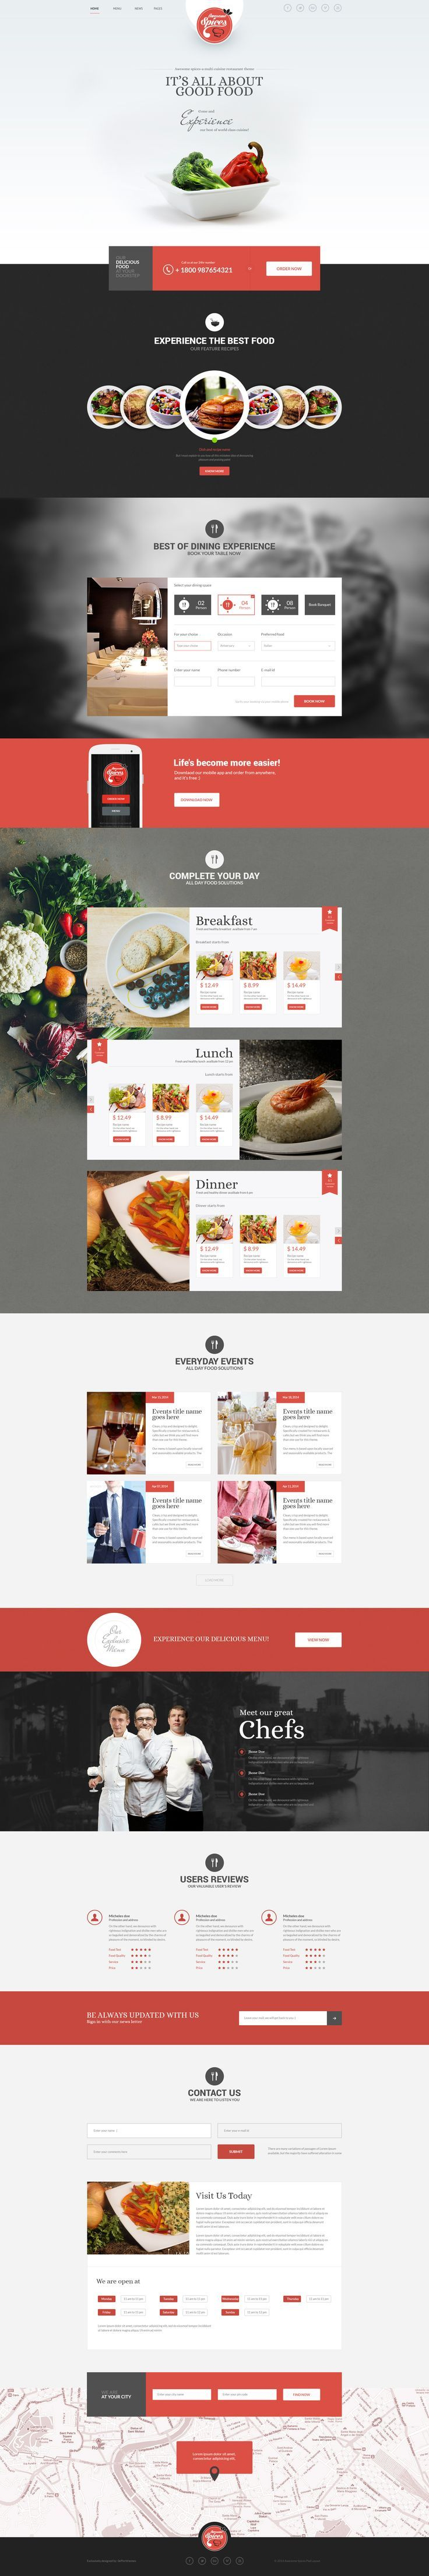 Web design trends - Awesome Spice-One Page Restaurant Theme #webdesign